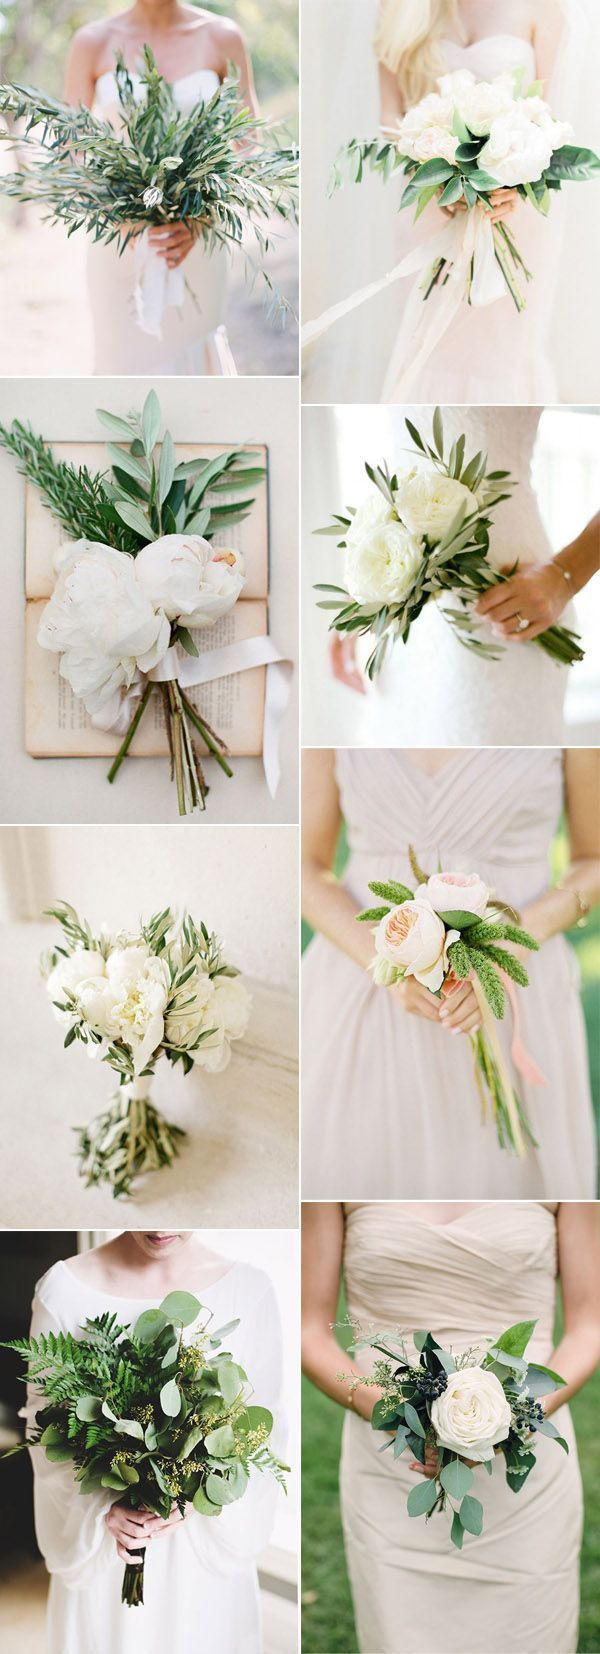 2017 trends easy diy organic minimalist wedding ideas to be 2017 trends easy diy organic minimalist wedding ideas solutioingenieria Gallery